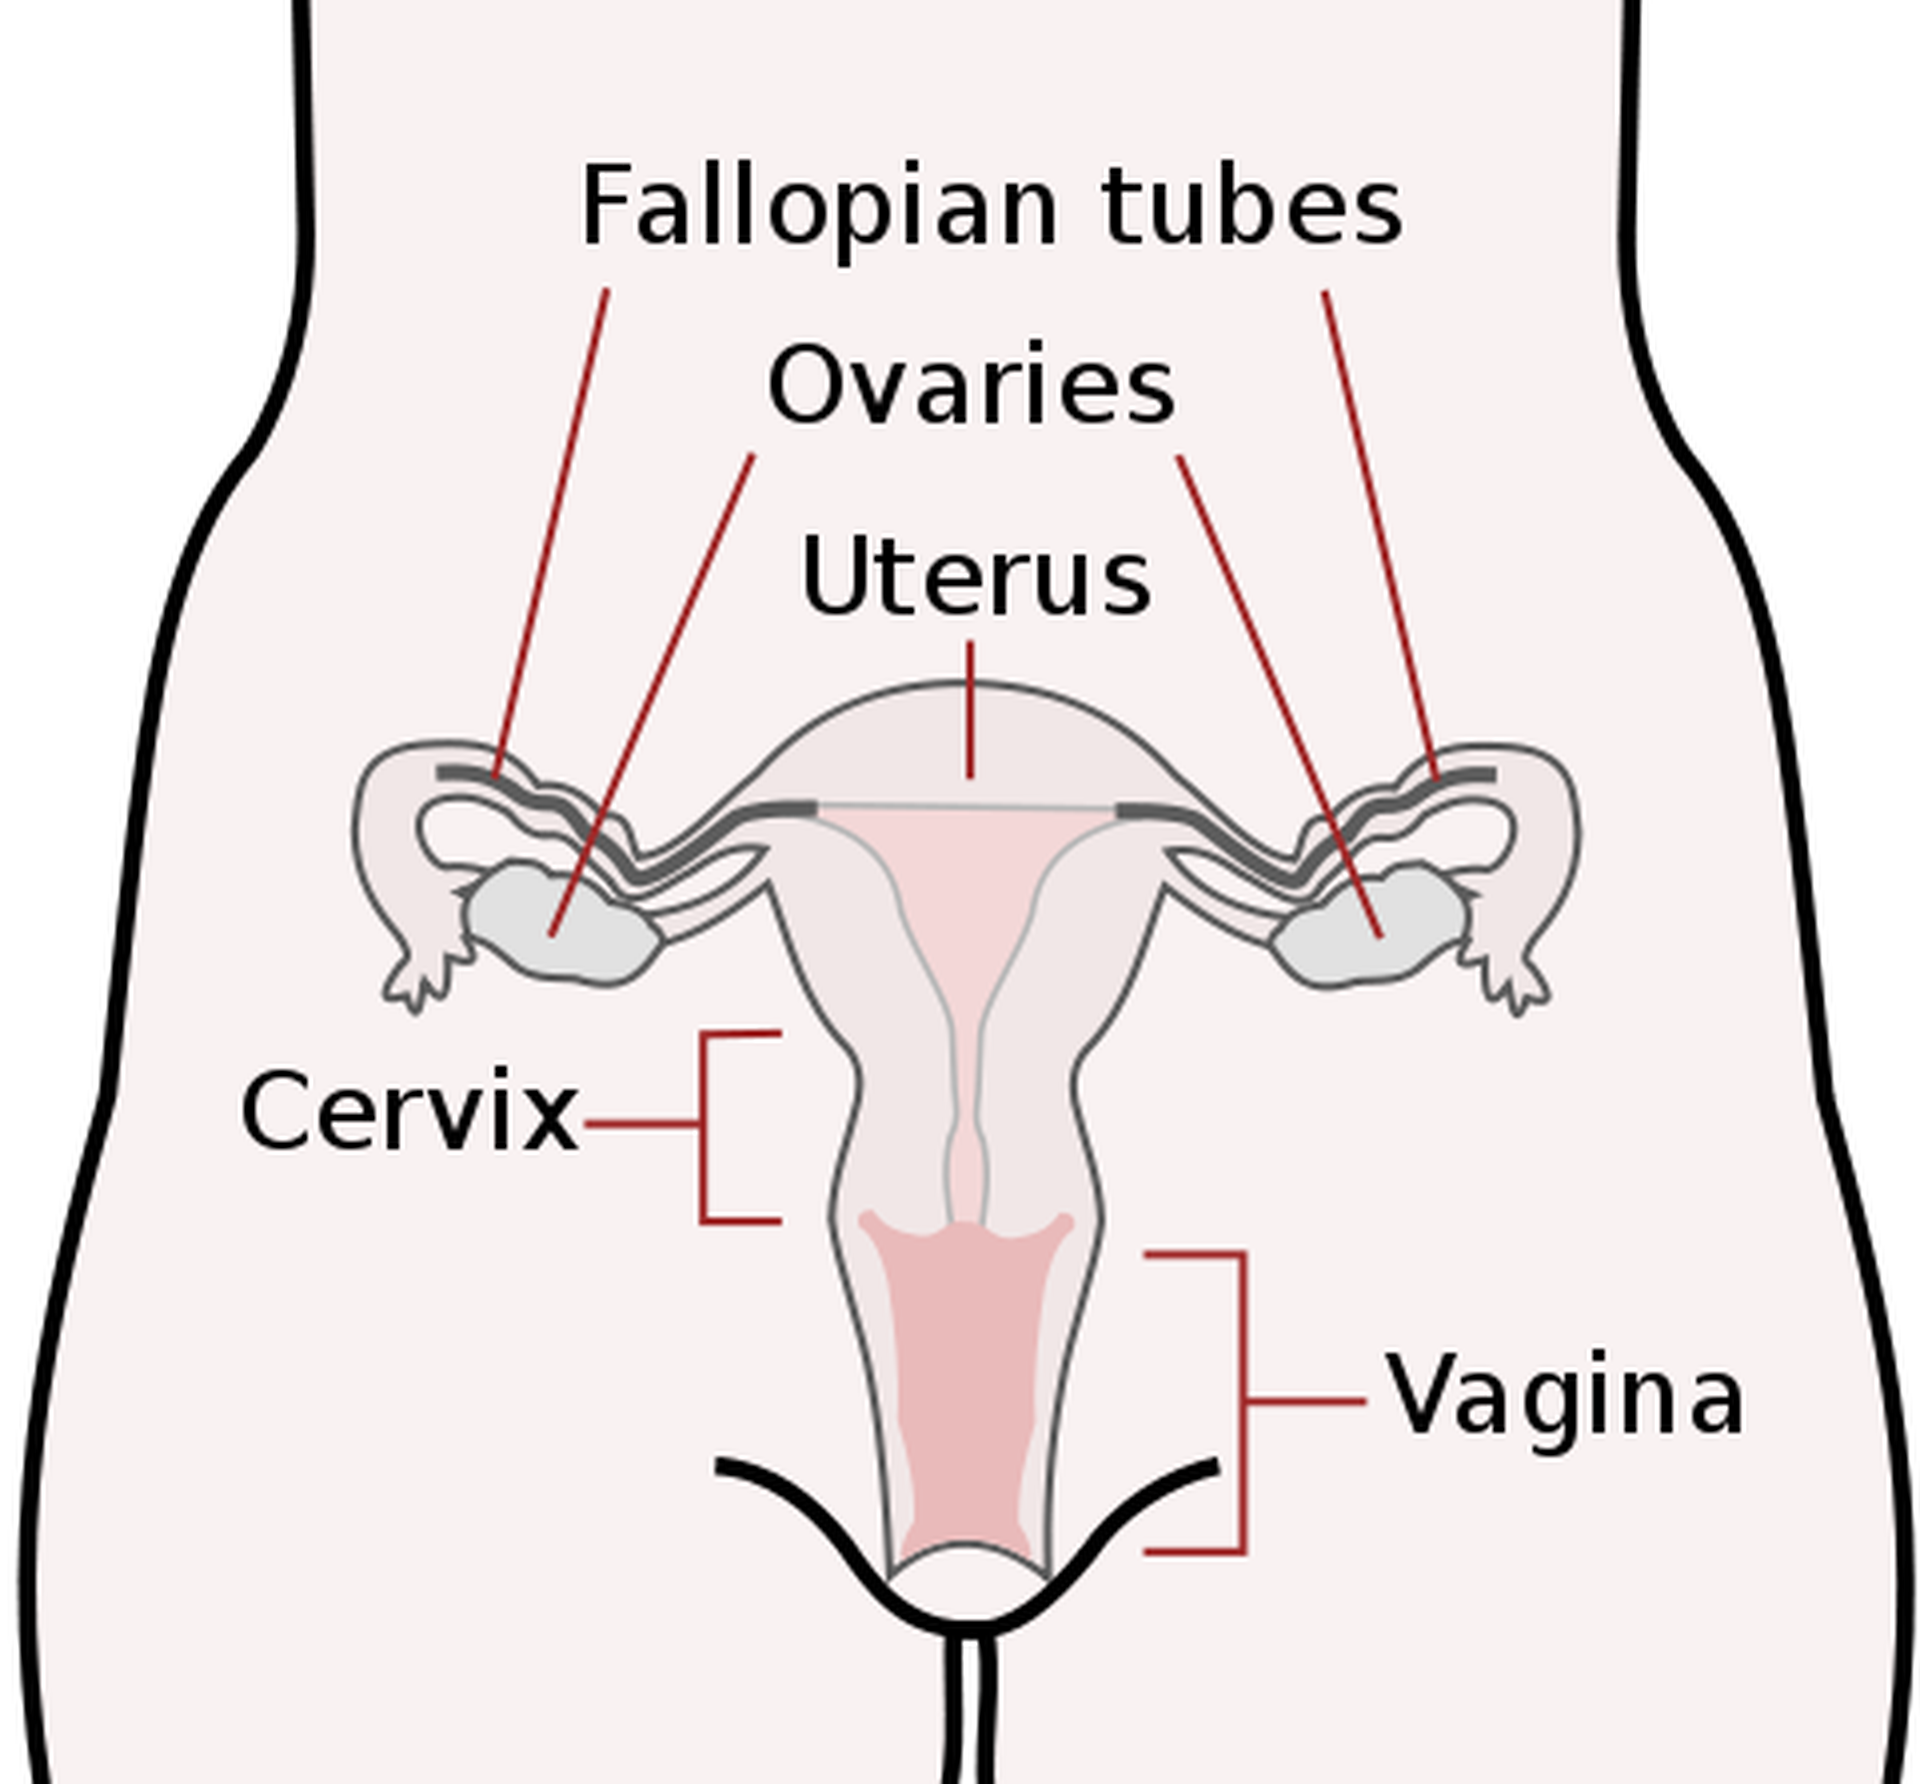 Hysterectomy and ovariectomy - consequences of removal of the uterus and ovaries